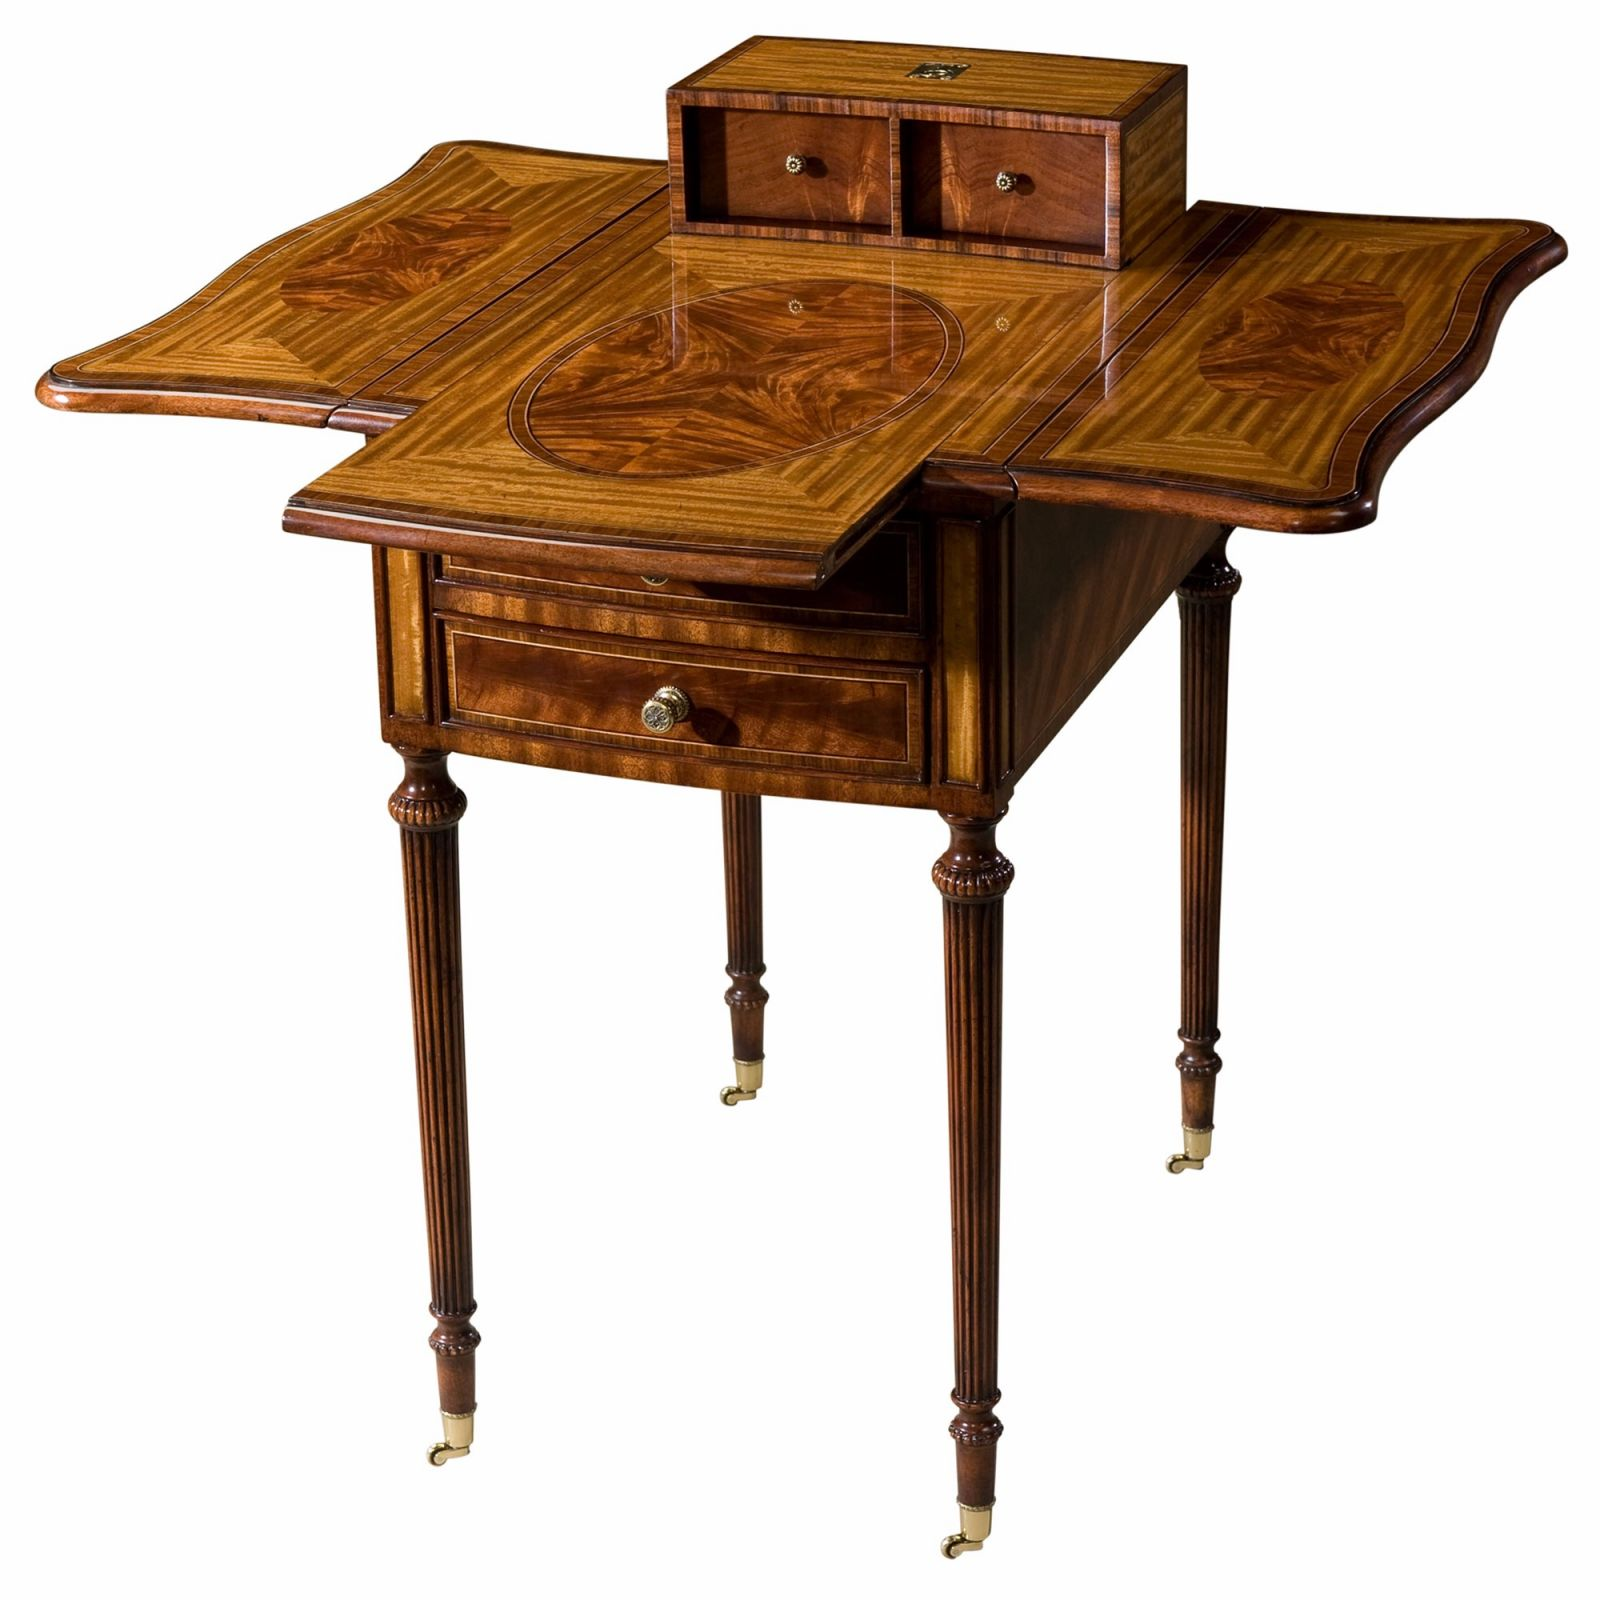 Satinwood and Flame Mahogany Inlaid Harlequin Table